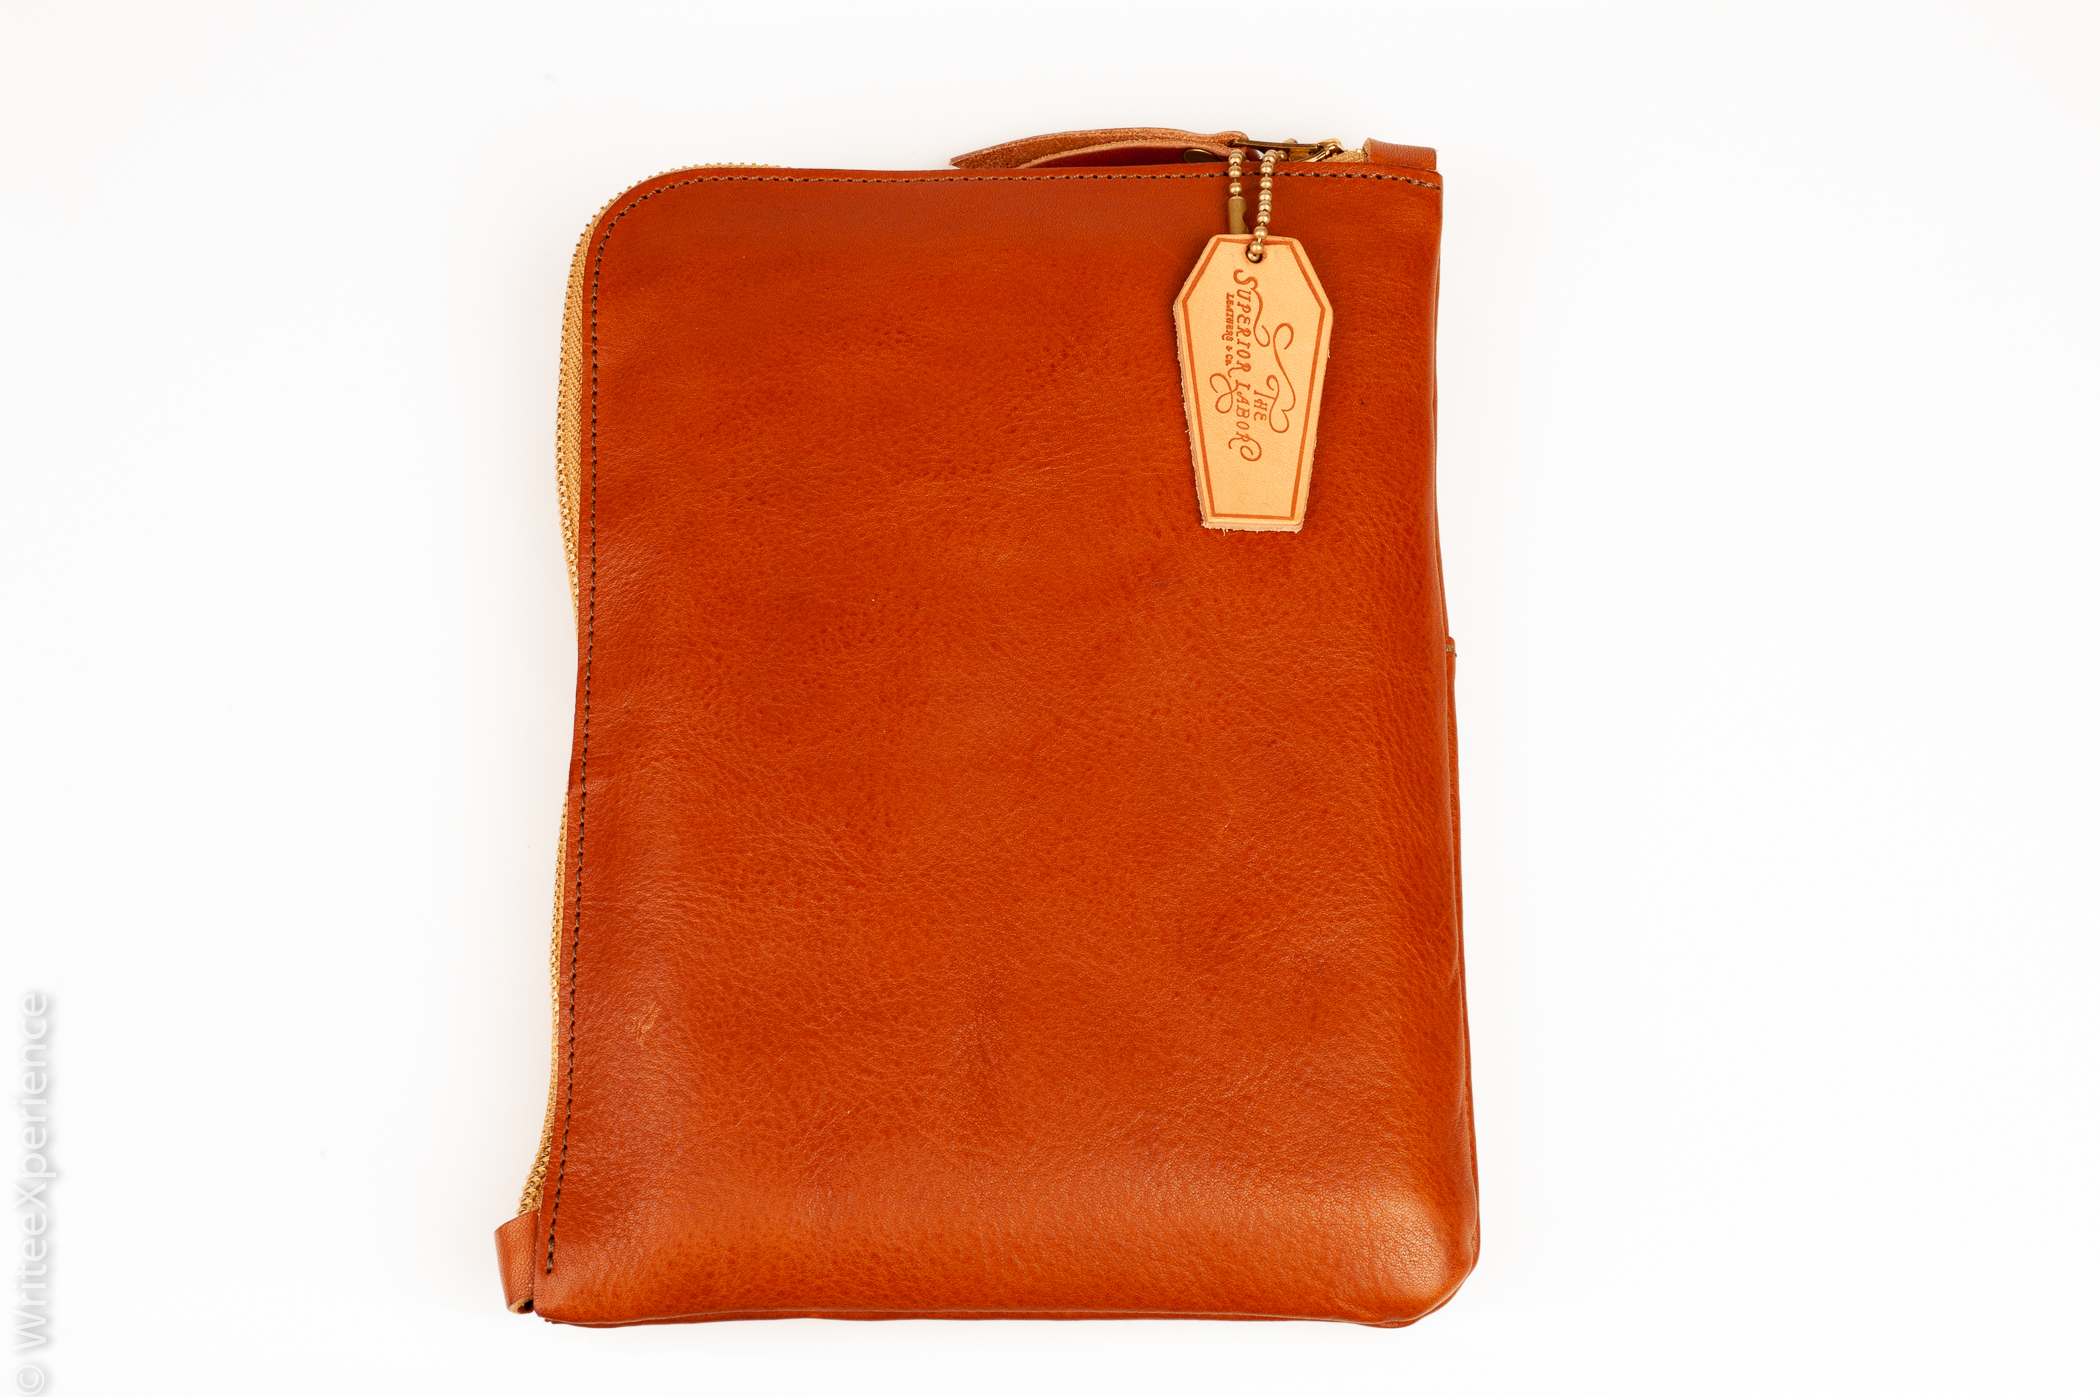 WriteeXperience-superior_labor_A5_leather_notebook_cover-3.jpg